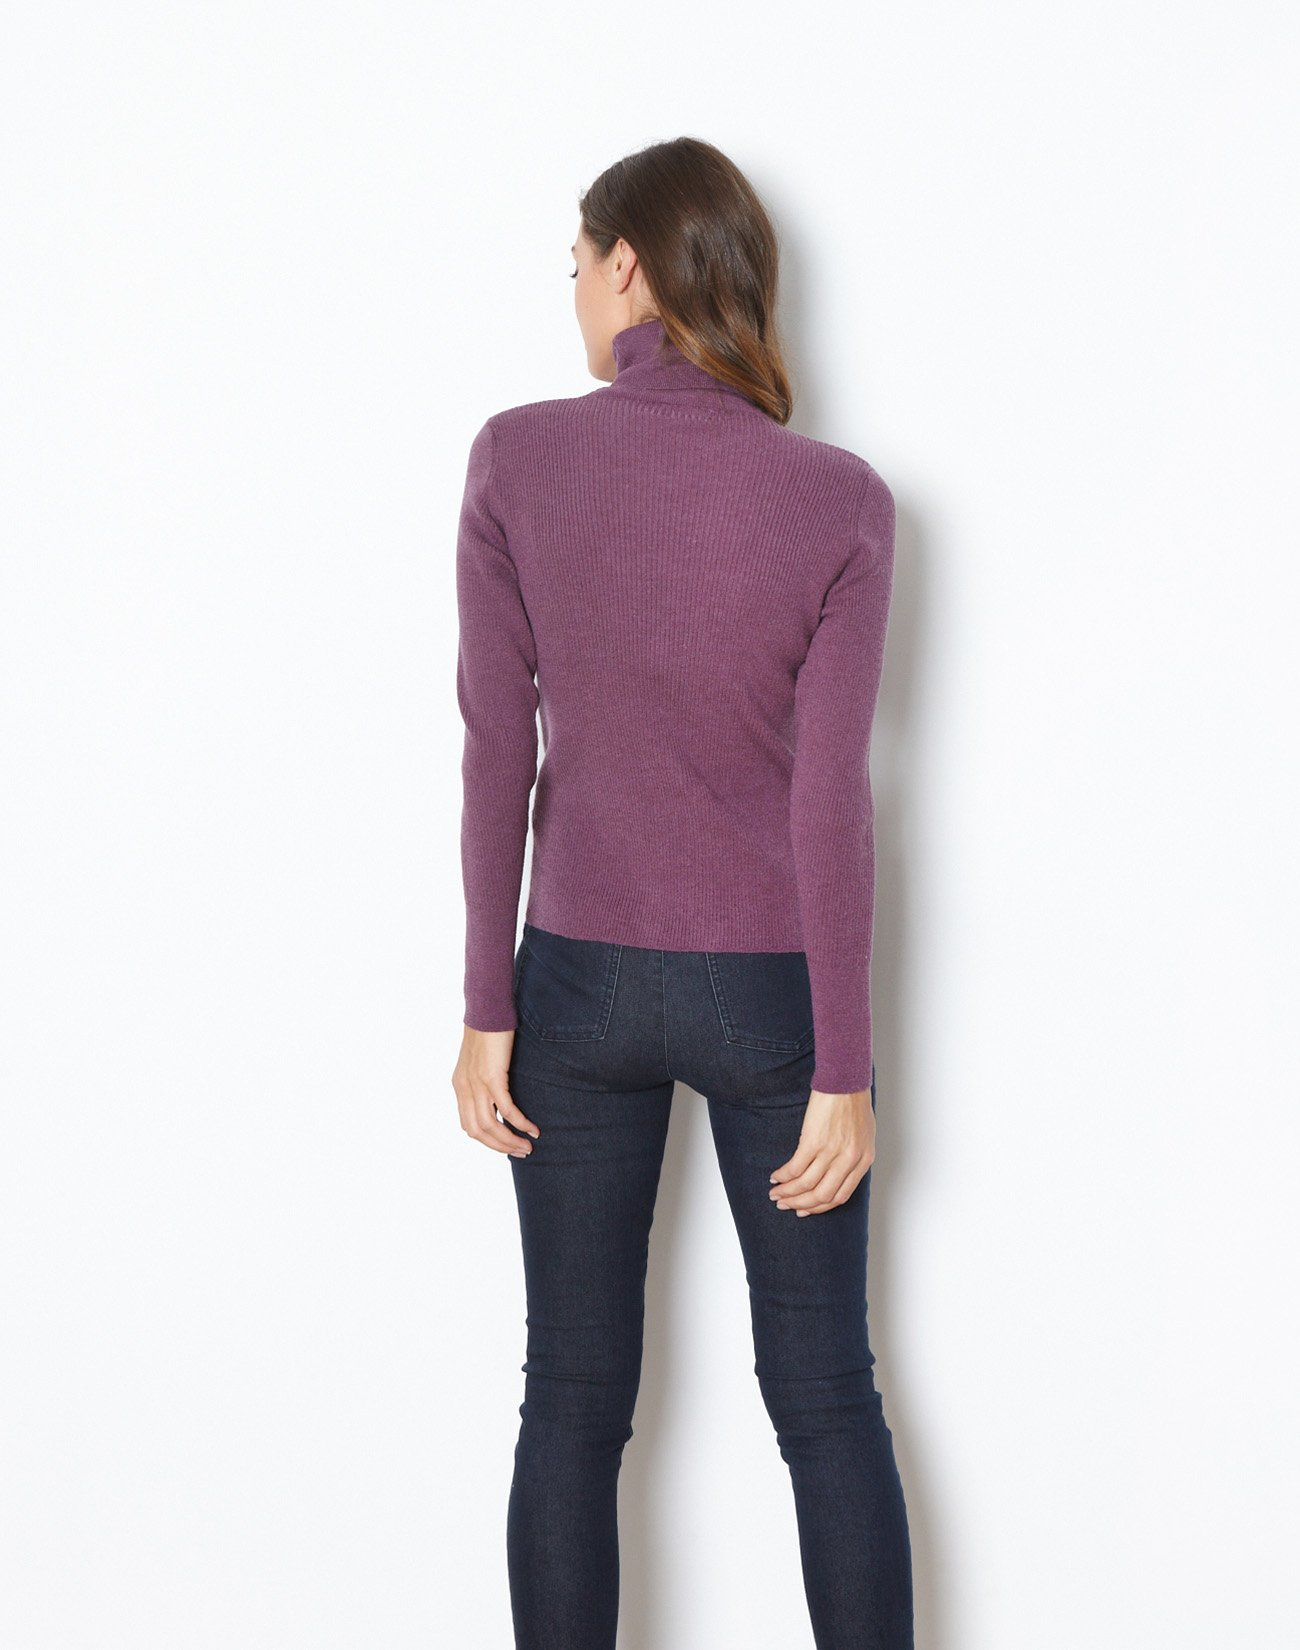 Knit top with high neck